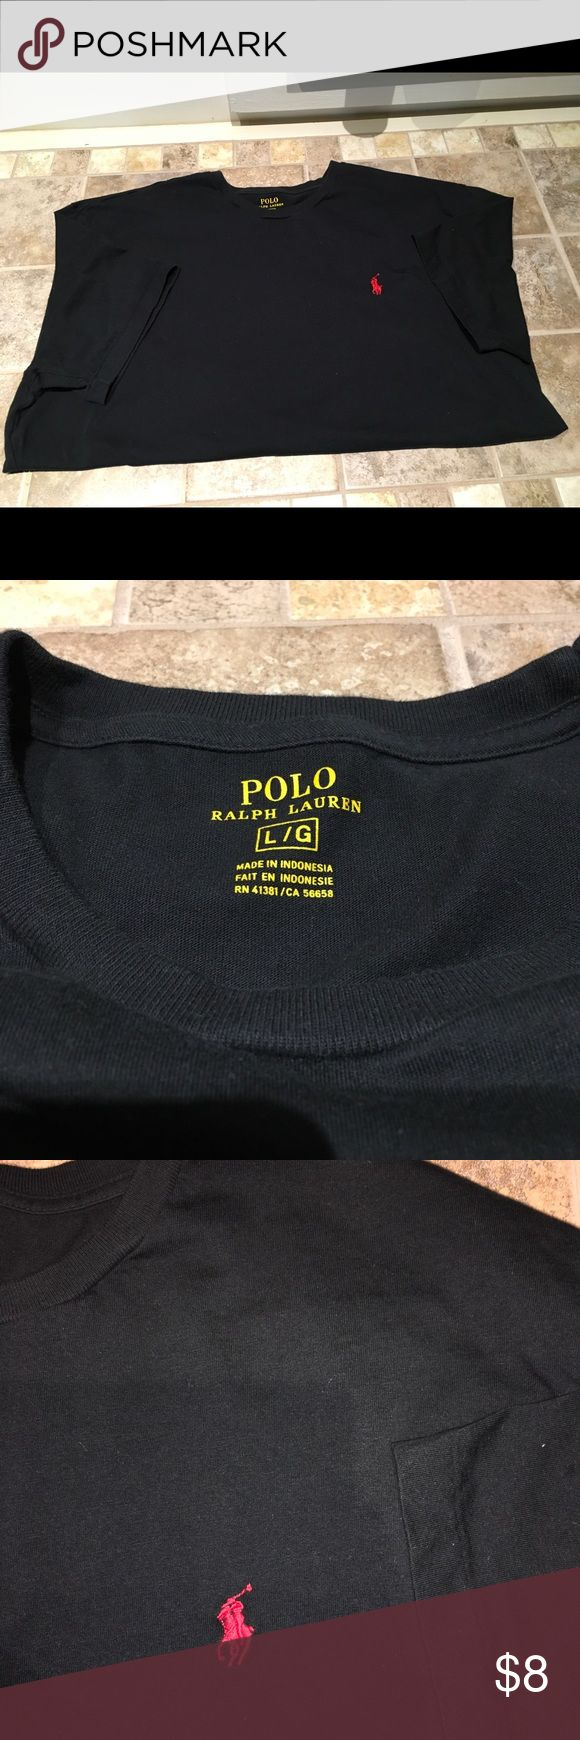 Men's Polo T-shirt Men's short sleeve polo T-shirt Black with red polo logo Crewneck Large Good condition All offers are considered Polo by Ralph Lauren Shirts